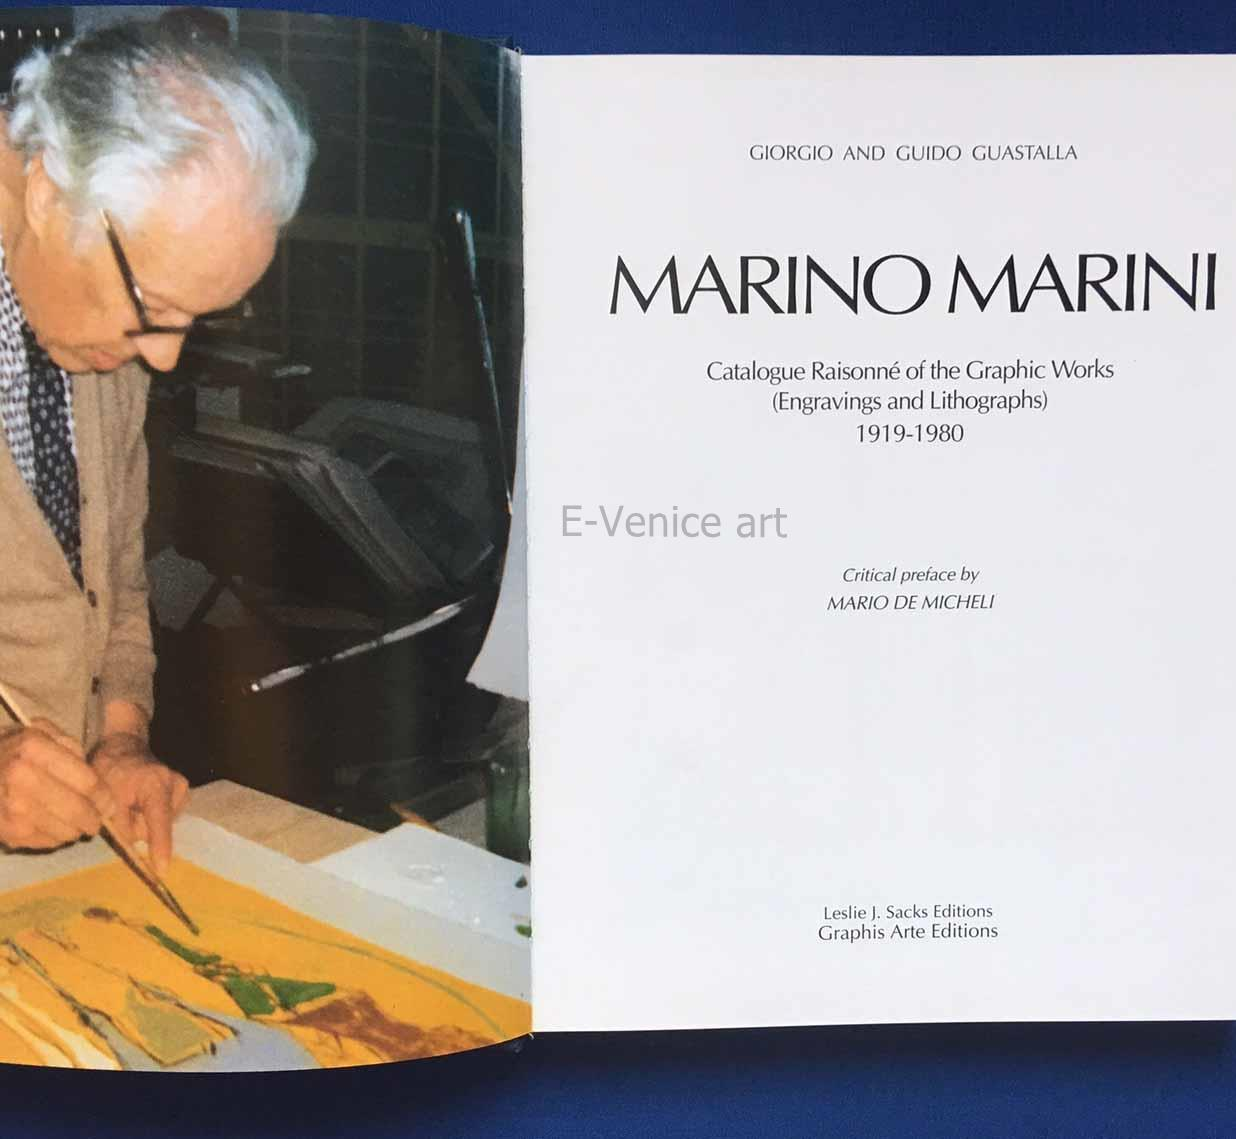 Marino Marini: Catalogue Raisonné of the Graphic Works, 1919-1980. (Catalogue Raisonné)